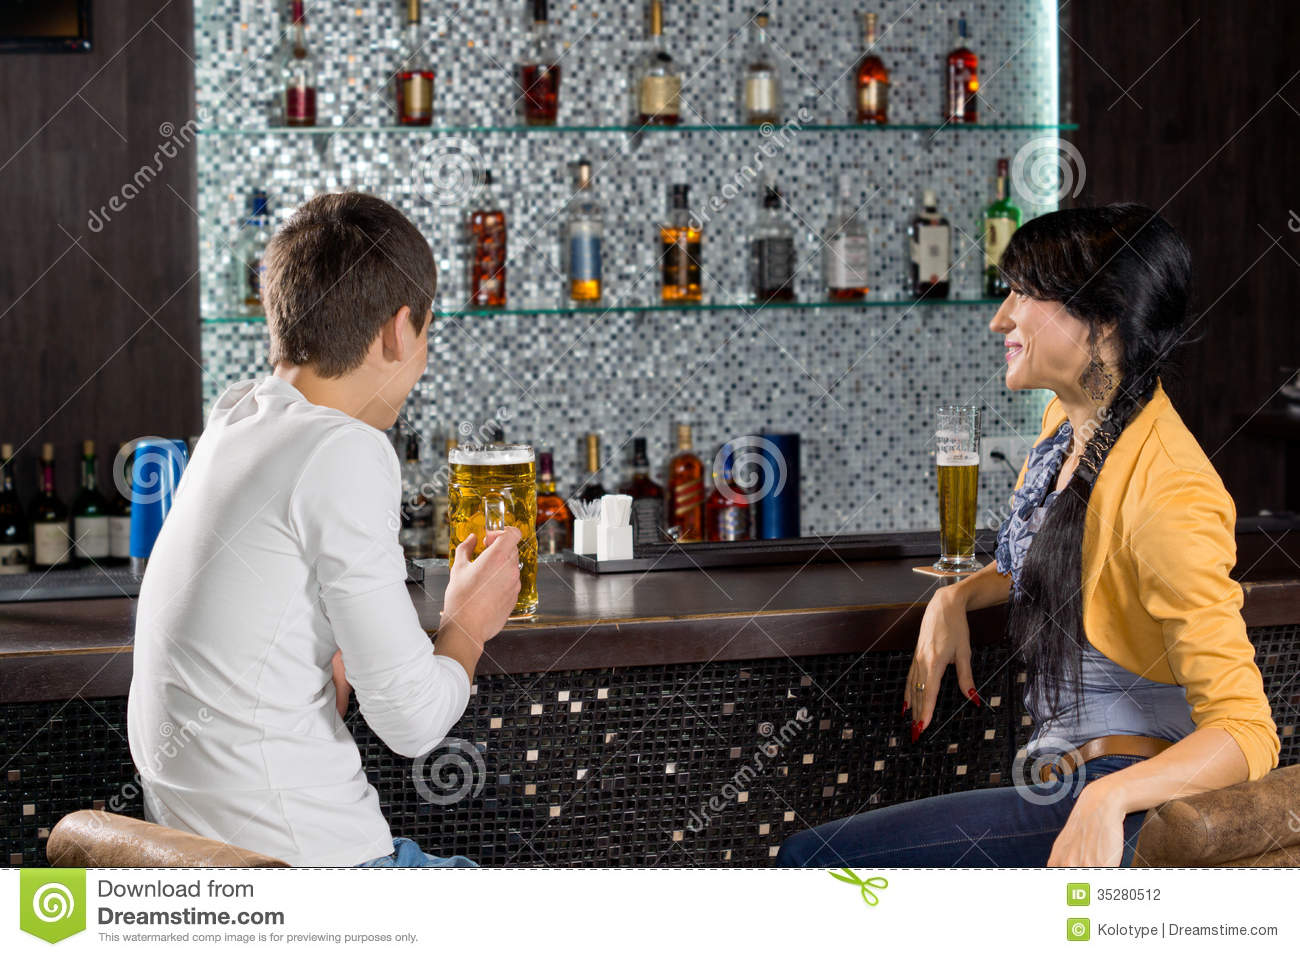 free online dating & chat in somes bar Hitwe is a fantastic choice if you're looking for a free online dating app that also acts as a social media app the platform sees almost 15 million daily active users and 12 million monthly active users, making it the fastest-growing online discovery network.